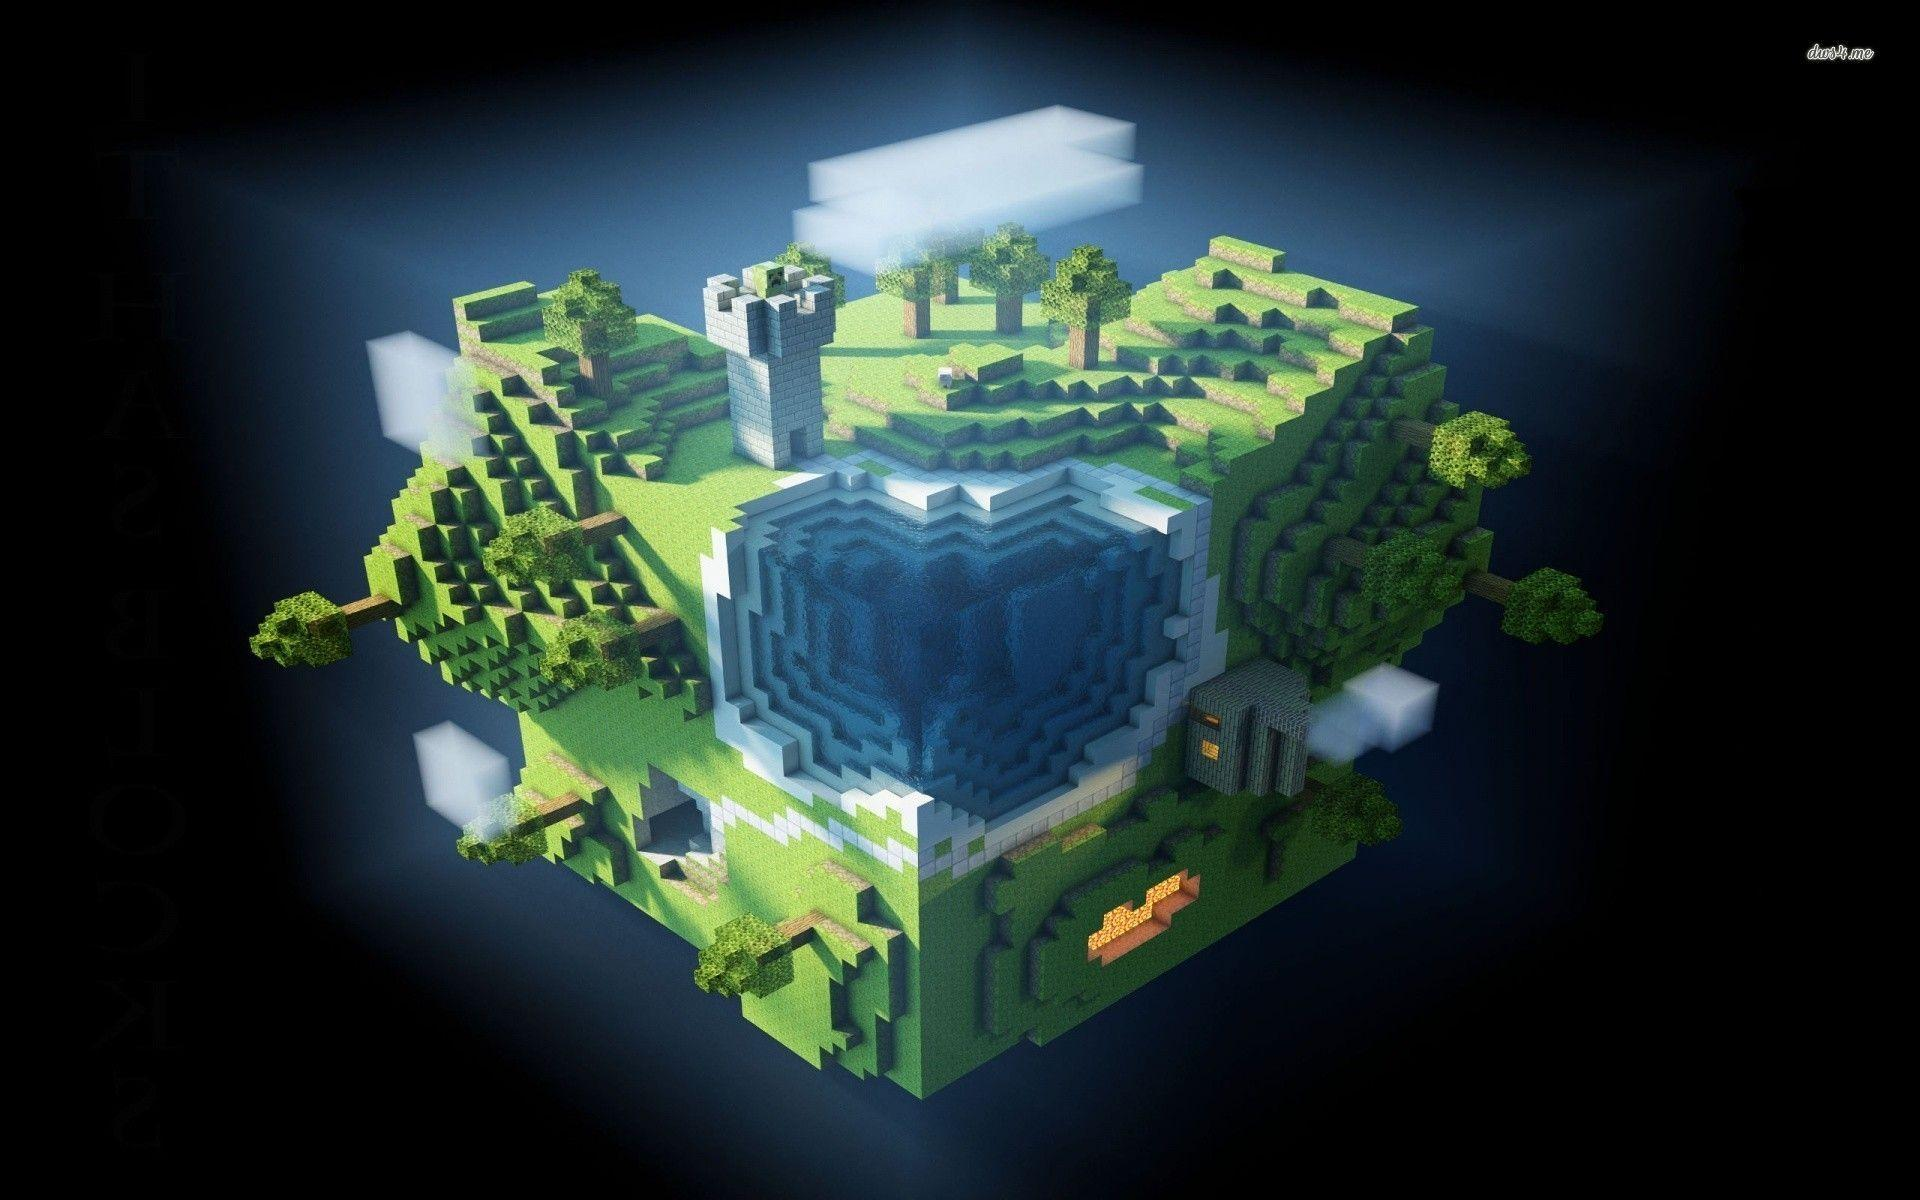 Minecraft Wallpapers - Full HD wallpaper search - page 10